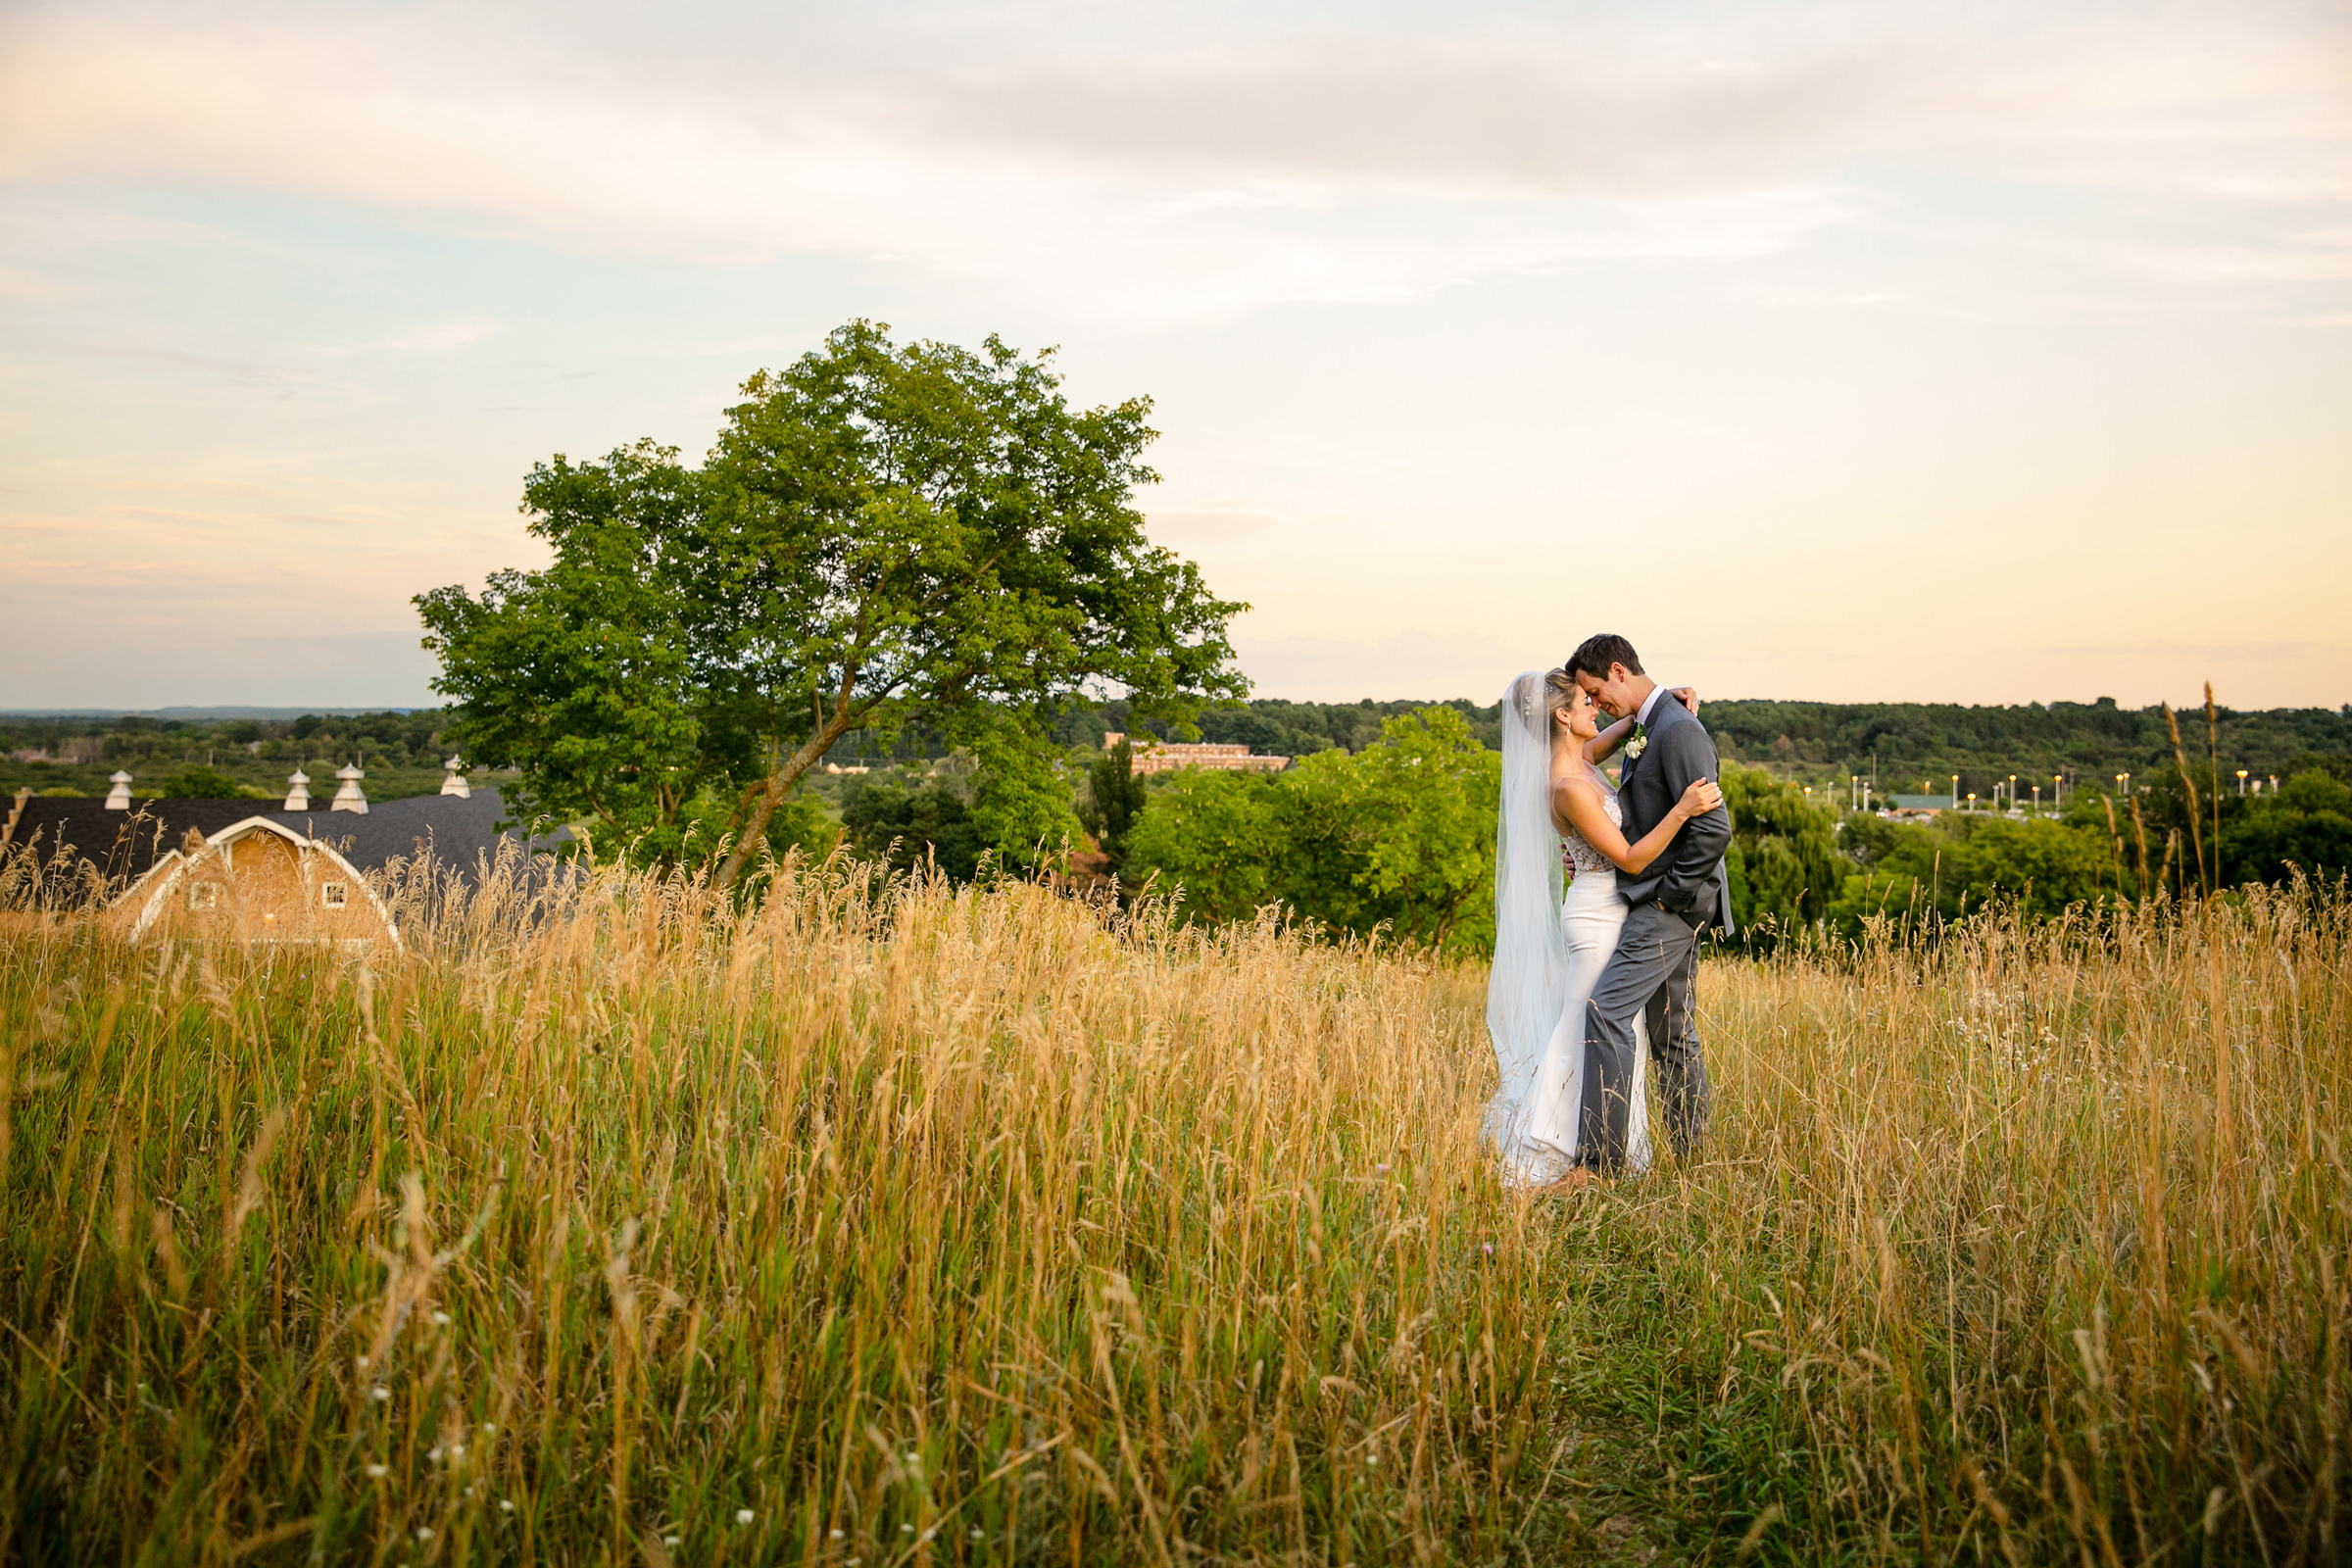 Couple pose in grassy field at historic barns park - photo by Rayan Anastor Photography